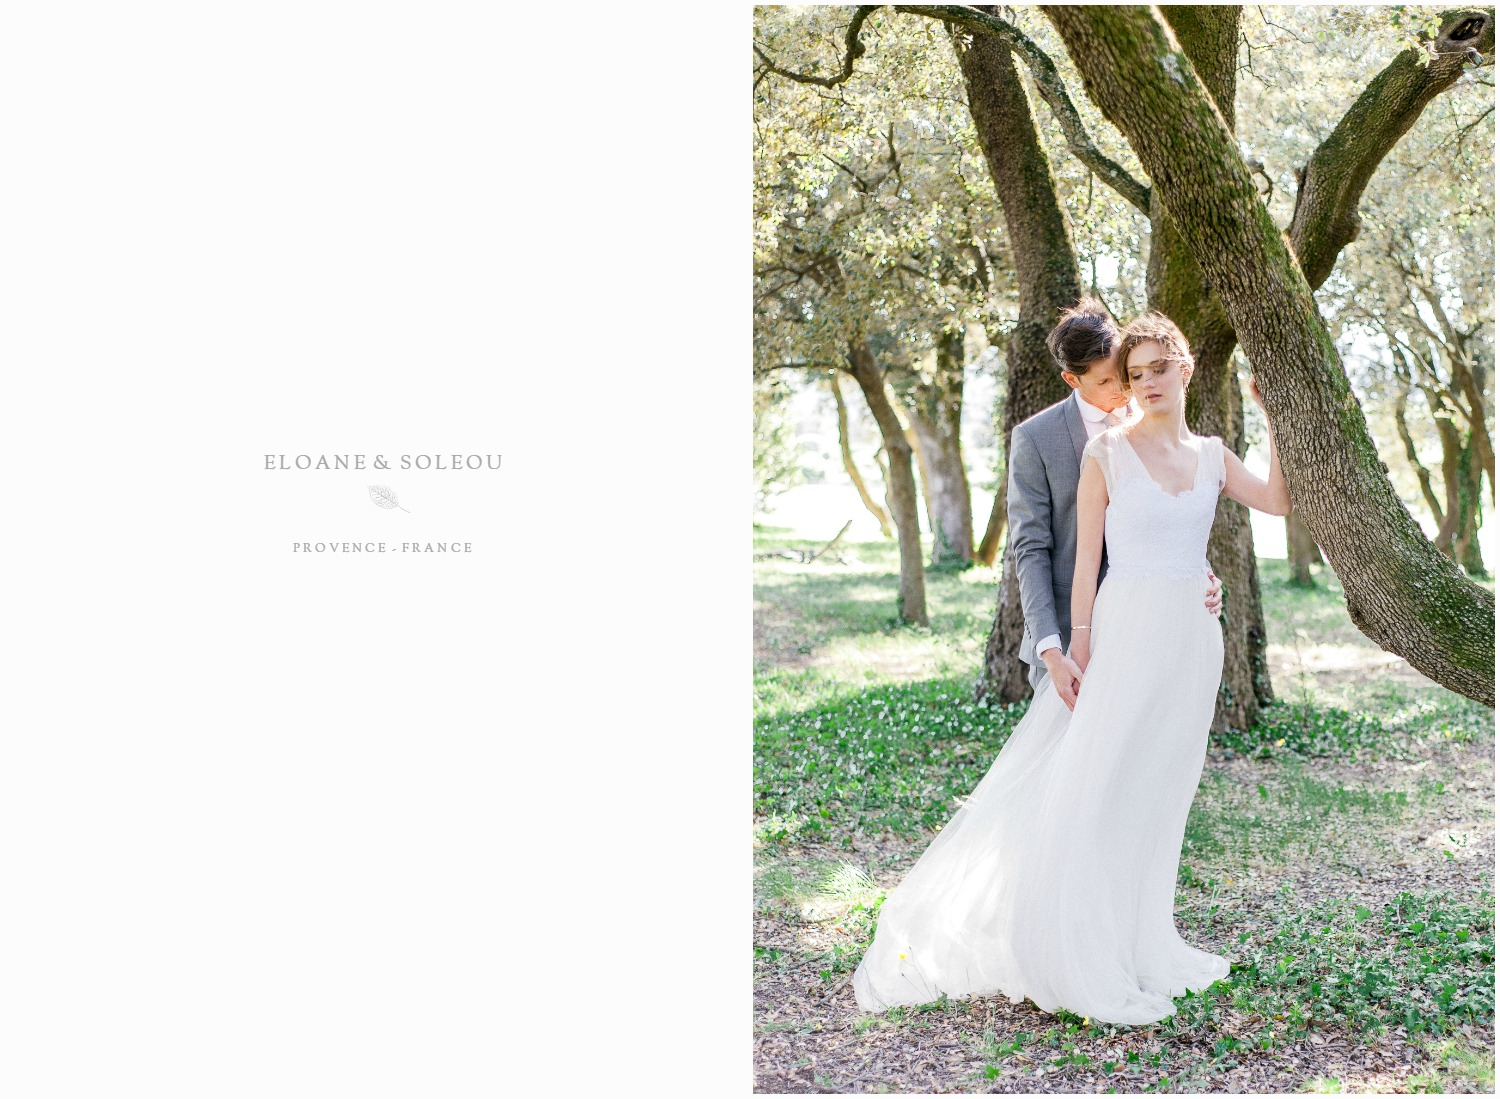 Romantic wedding in Provence